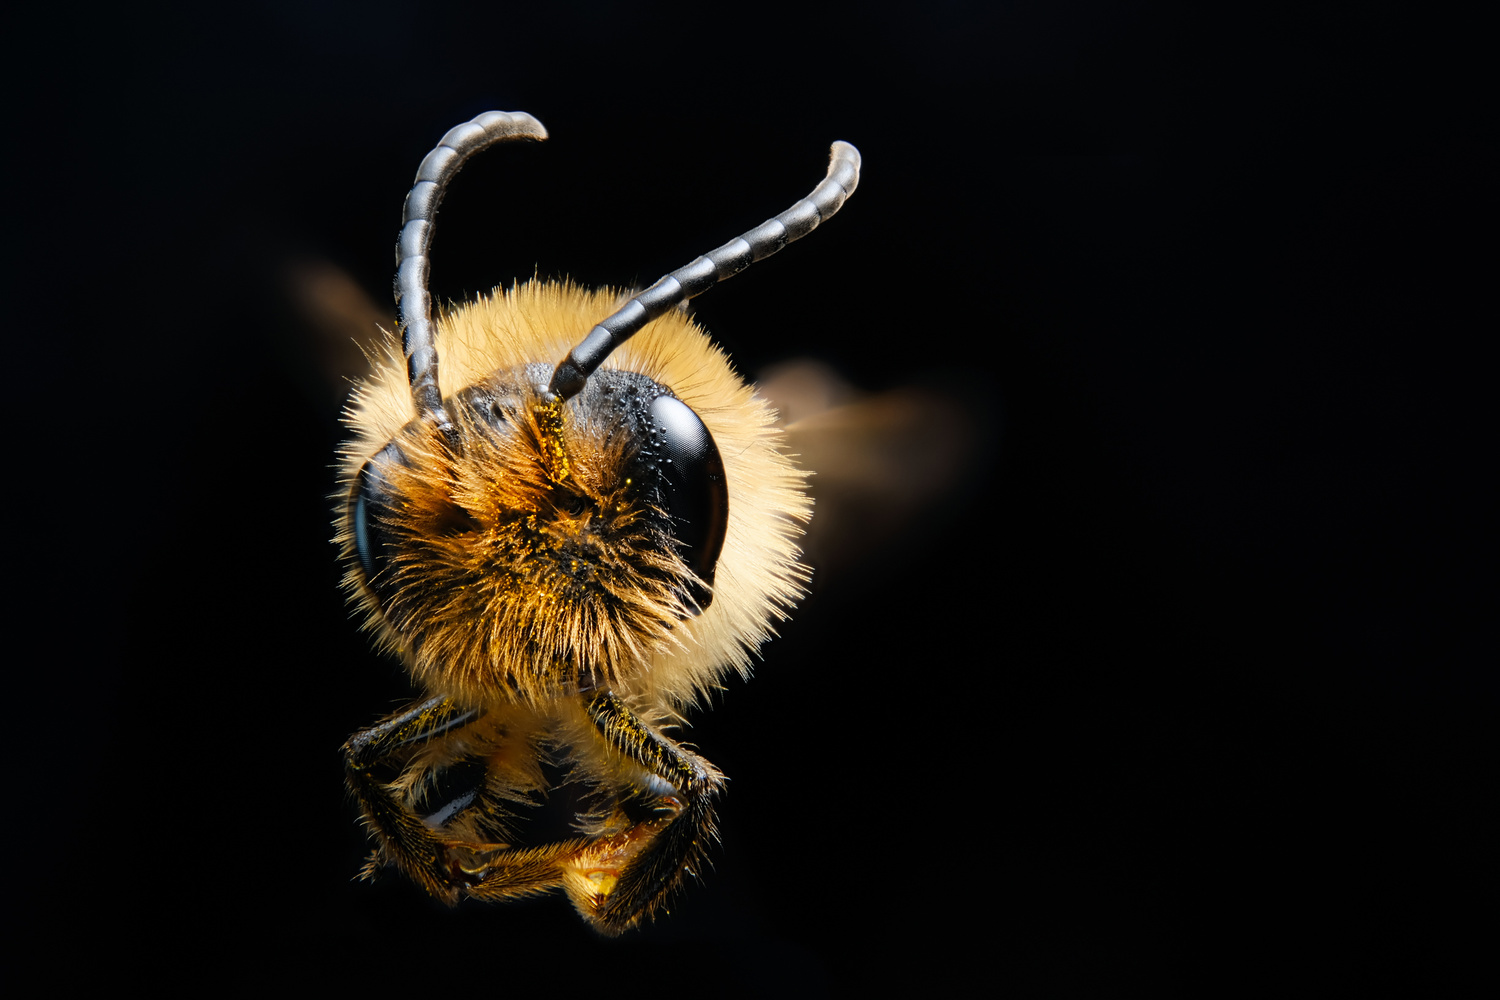 Flight of the Bee by Holger Vaga